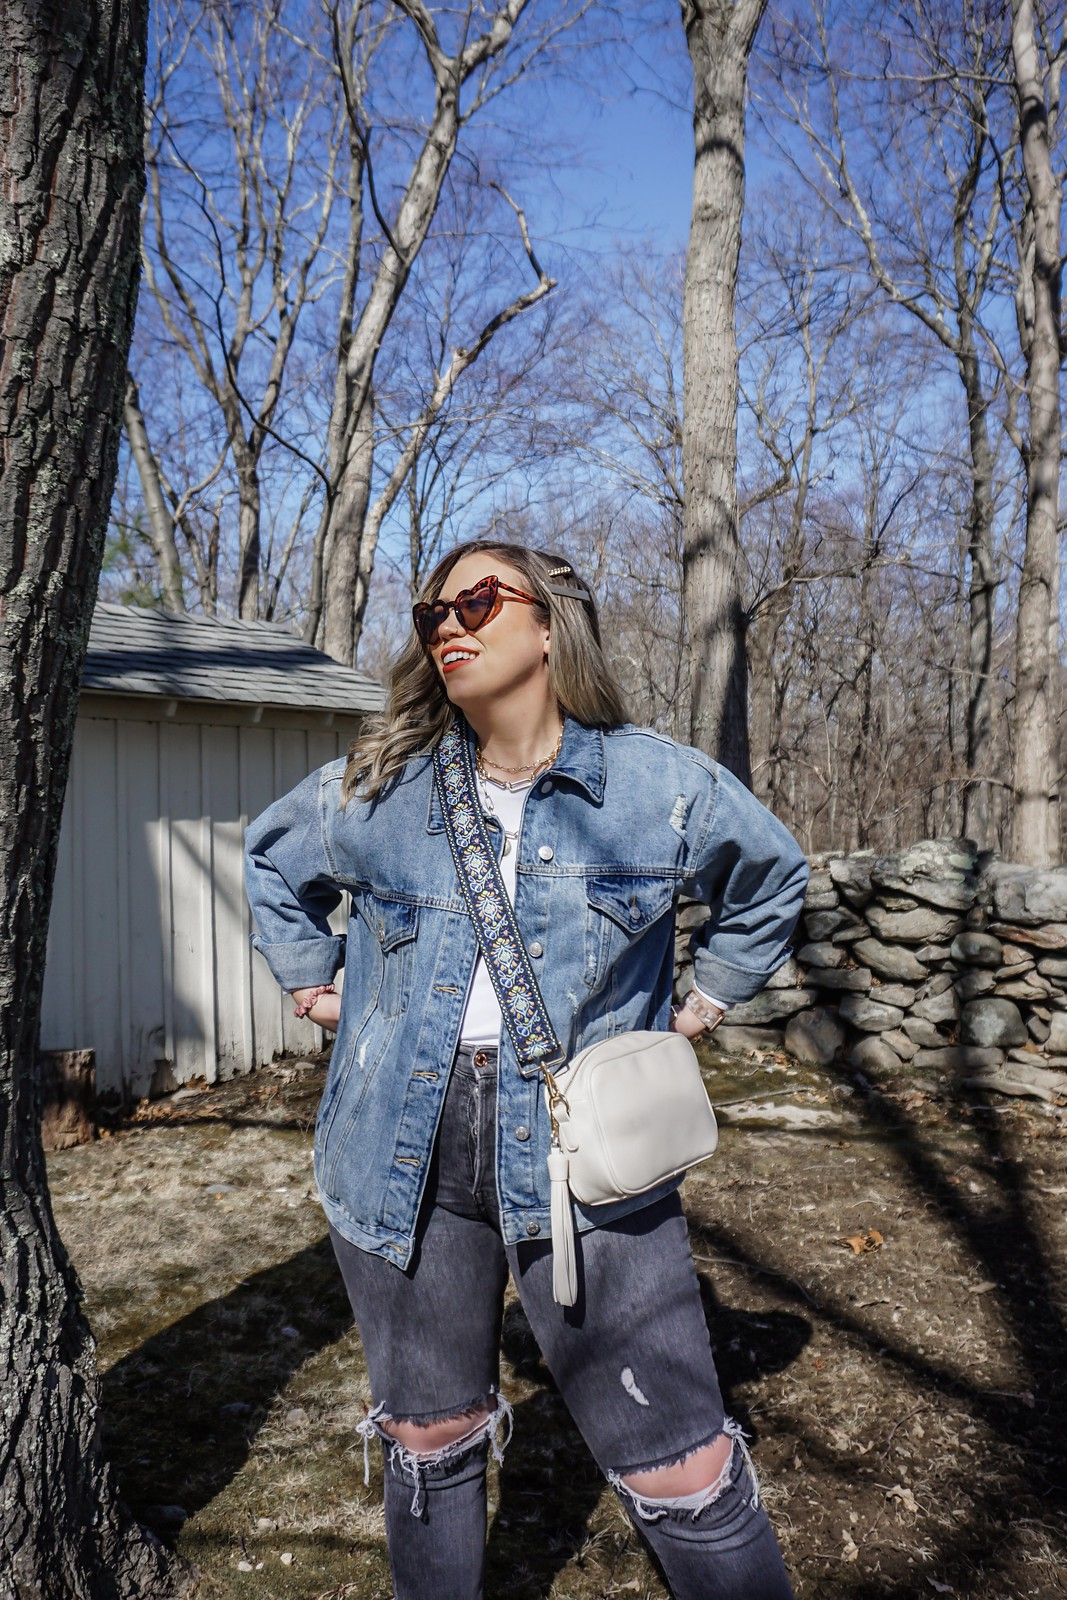 Ahdorned Bags | Spring Outfits Casual | Aesthetic Outfits | Mom Jeans | Vans Sneakers | Denim Jacket | Ahdorned: The Handbag Company You Need to Know About